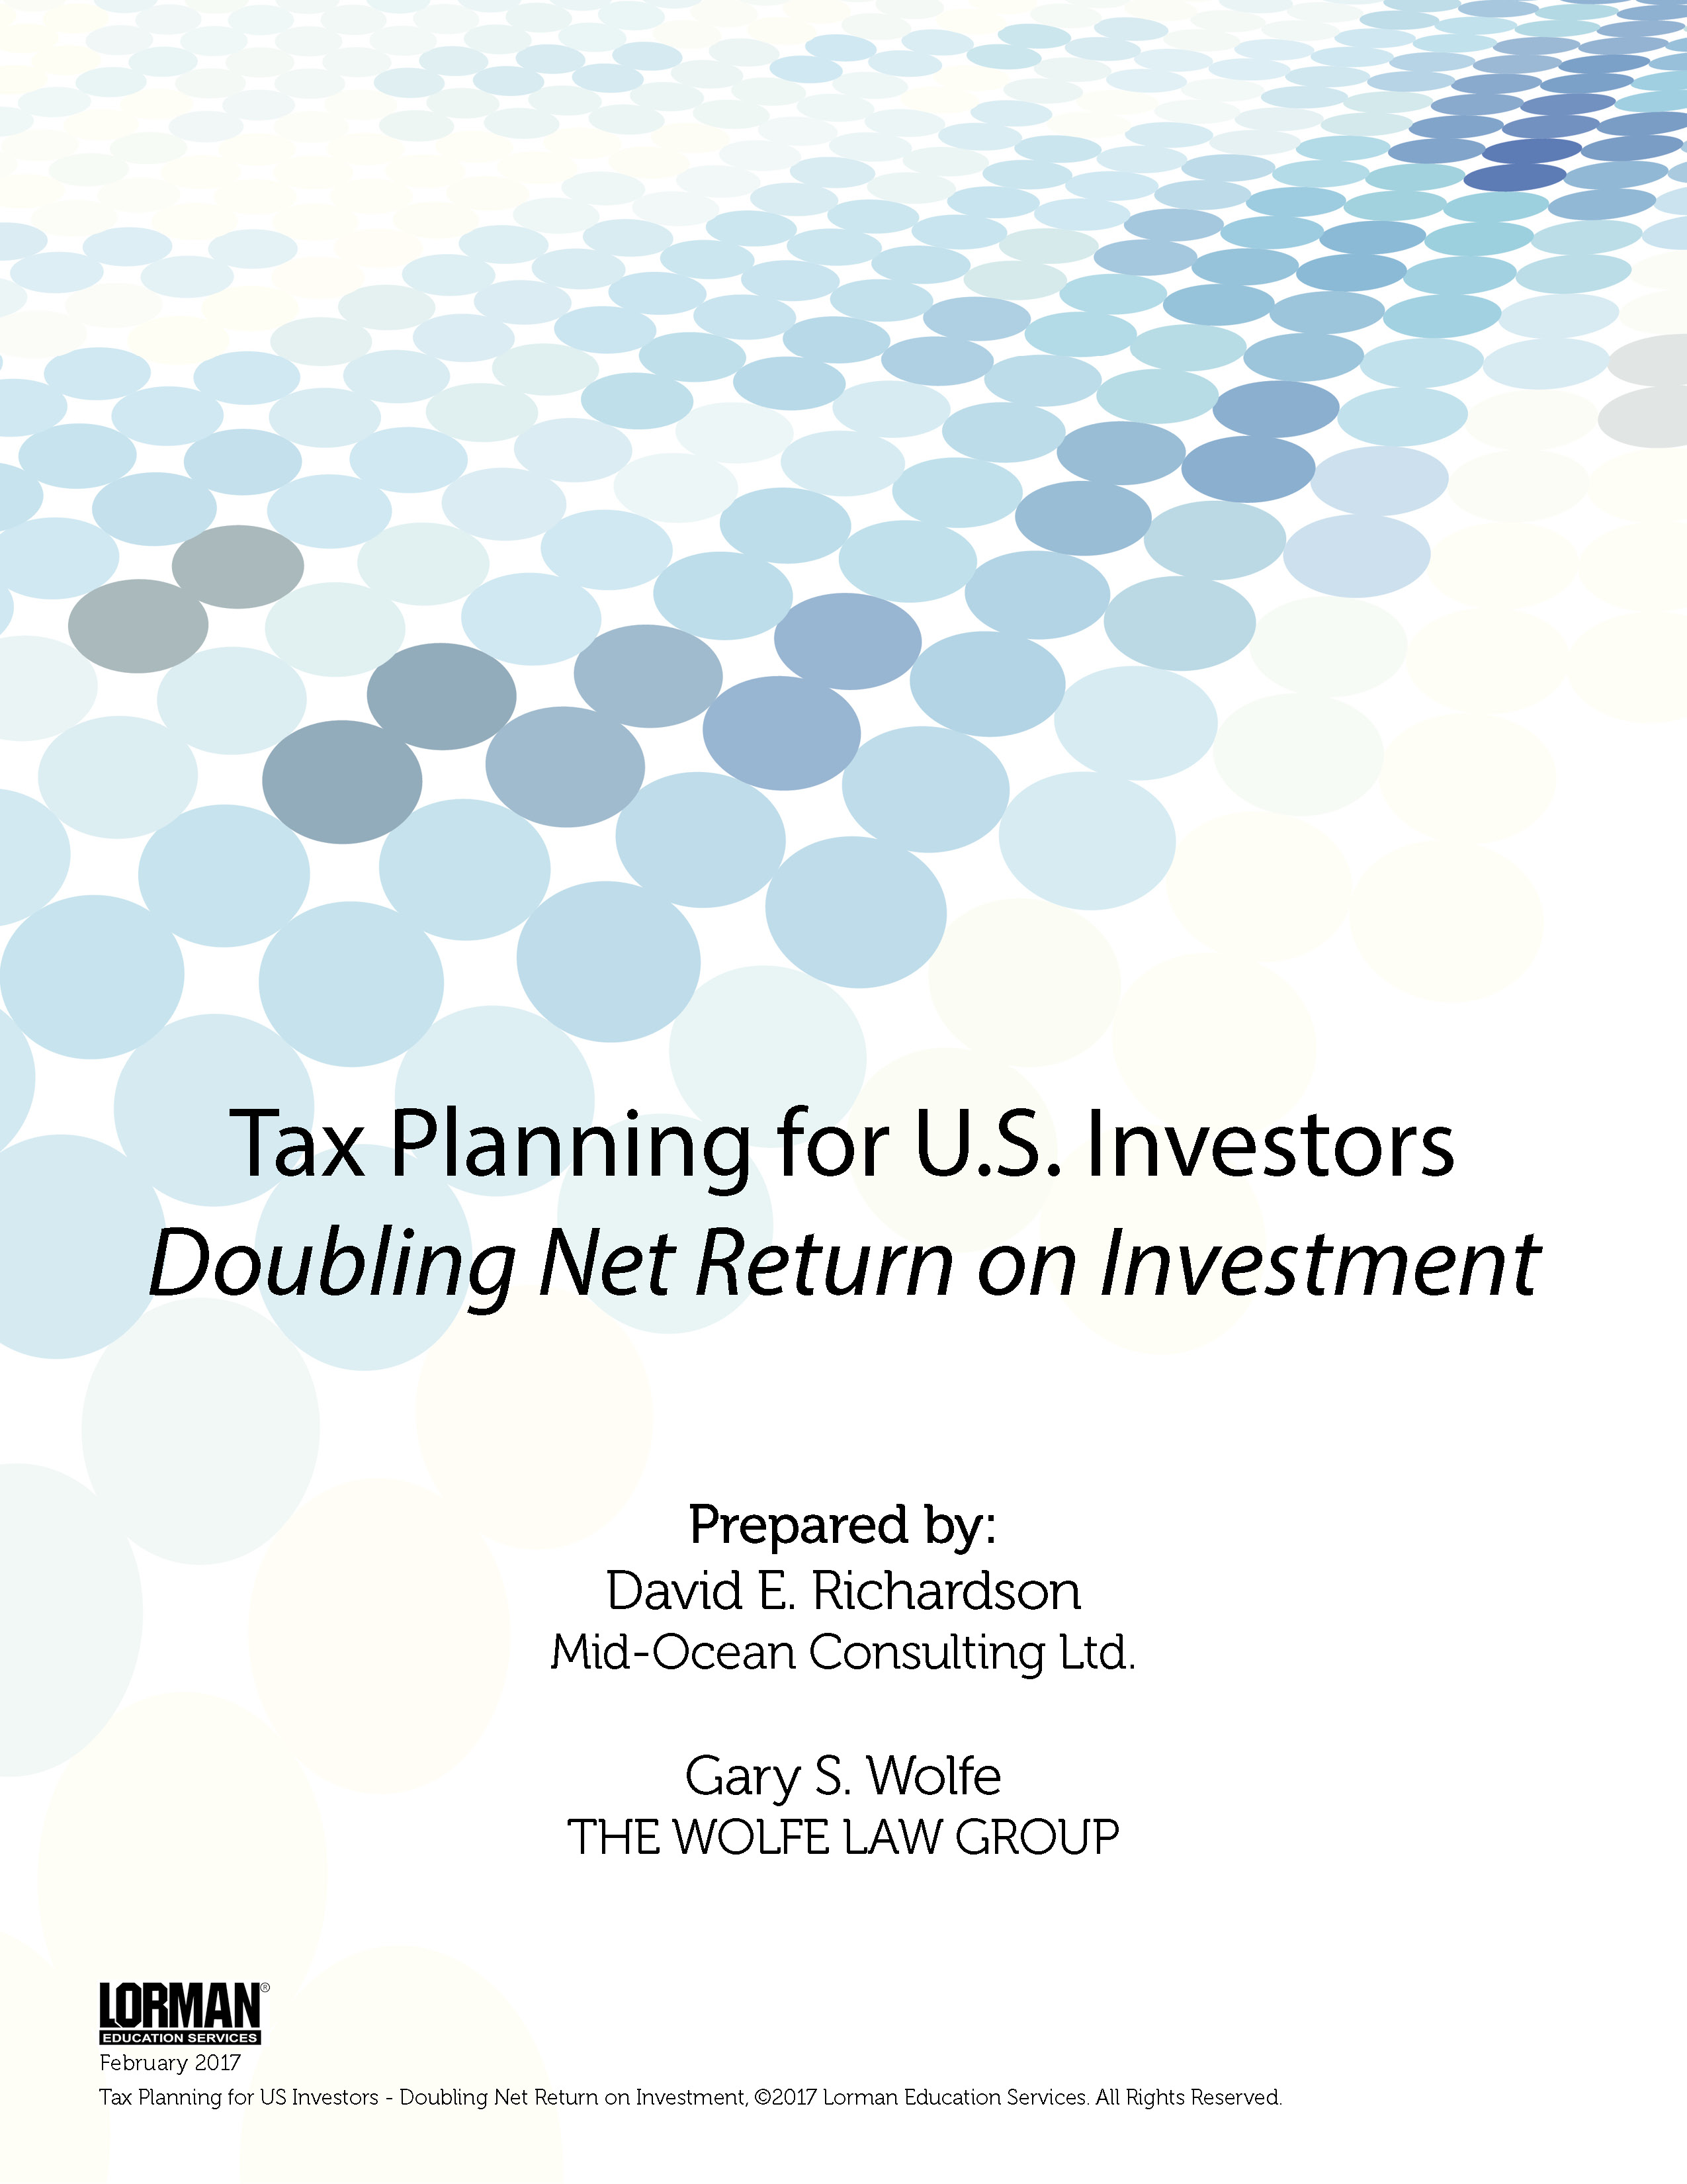 Tax Planning for US Investors - Doubling Net Return on Investment